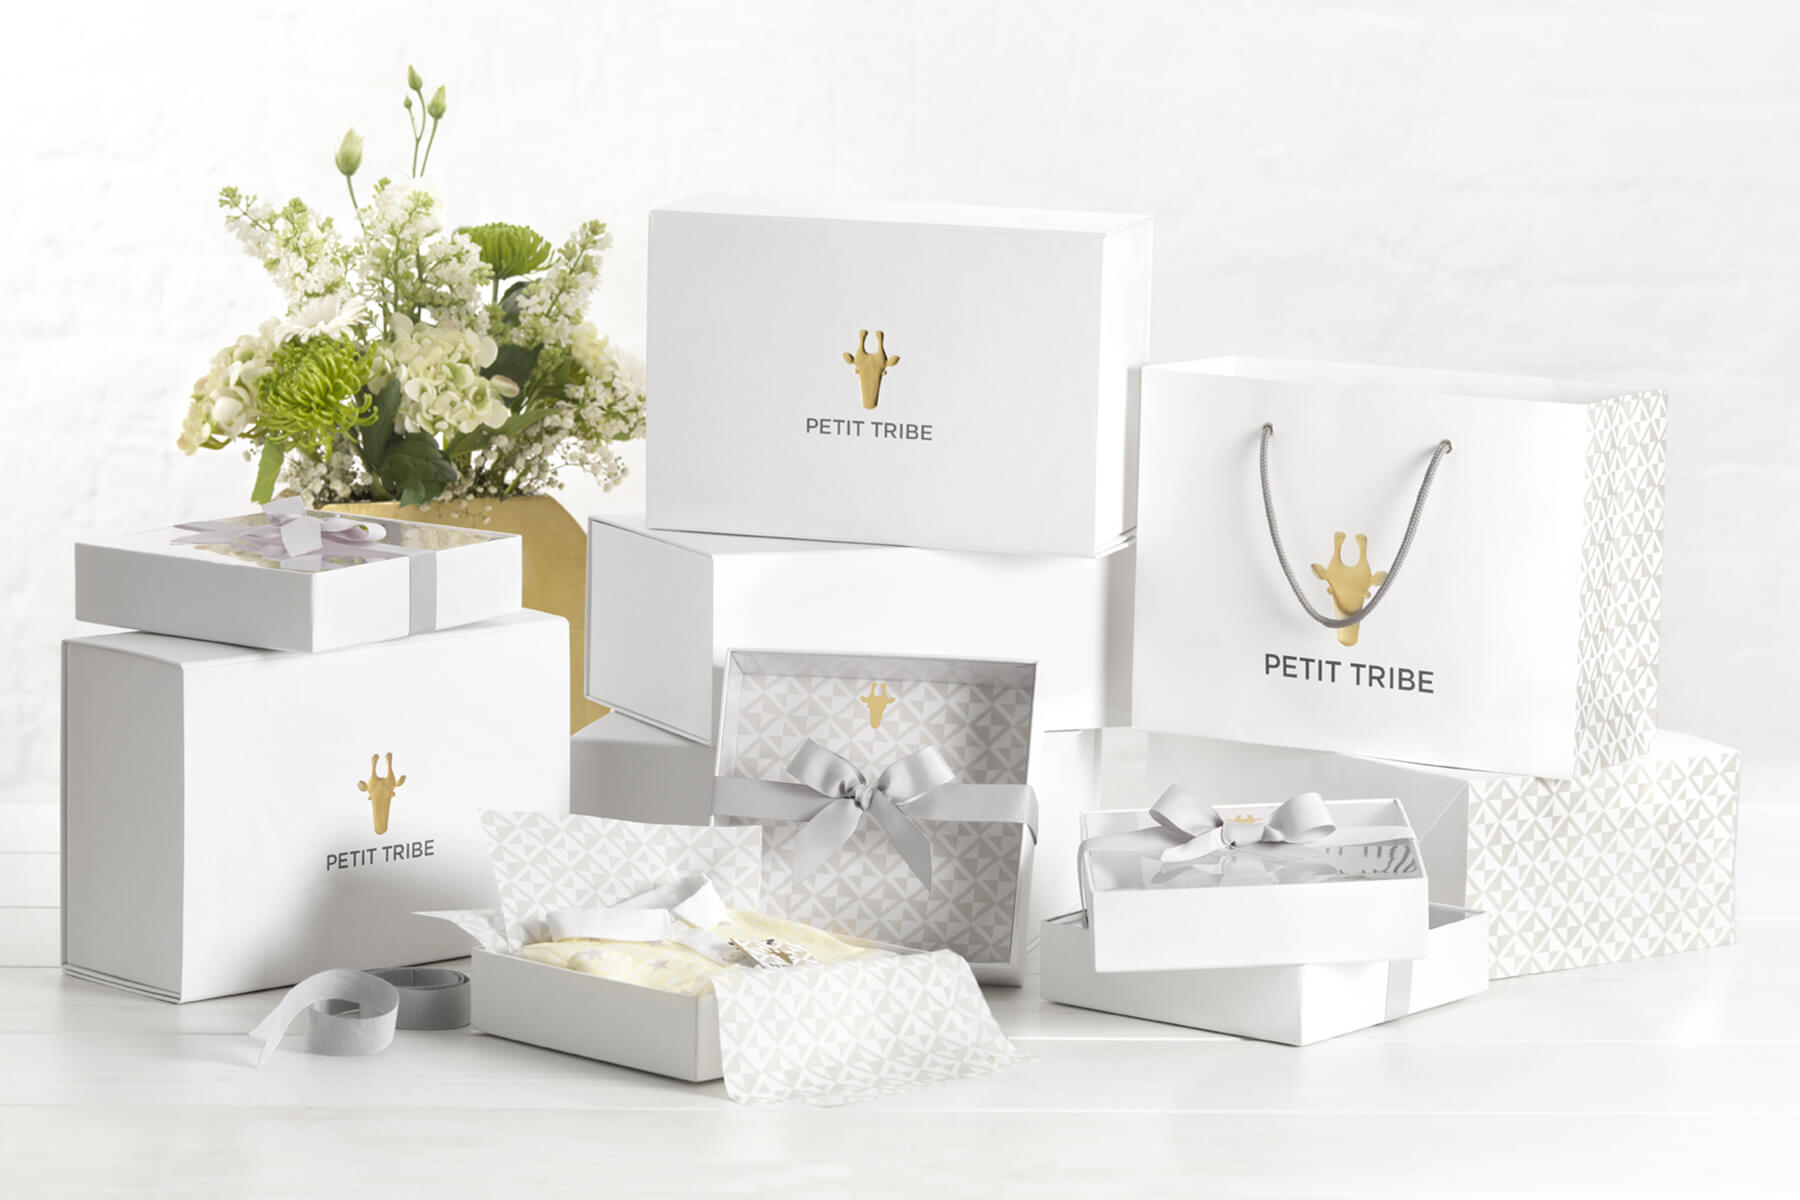 packaging design luxury fashion agency